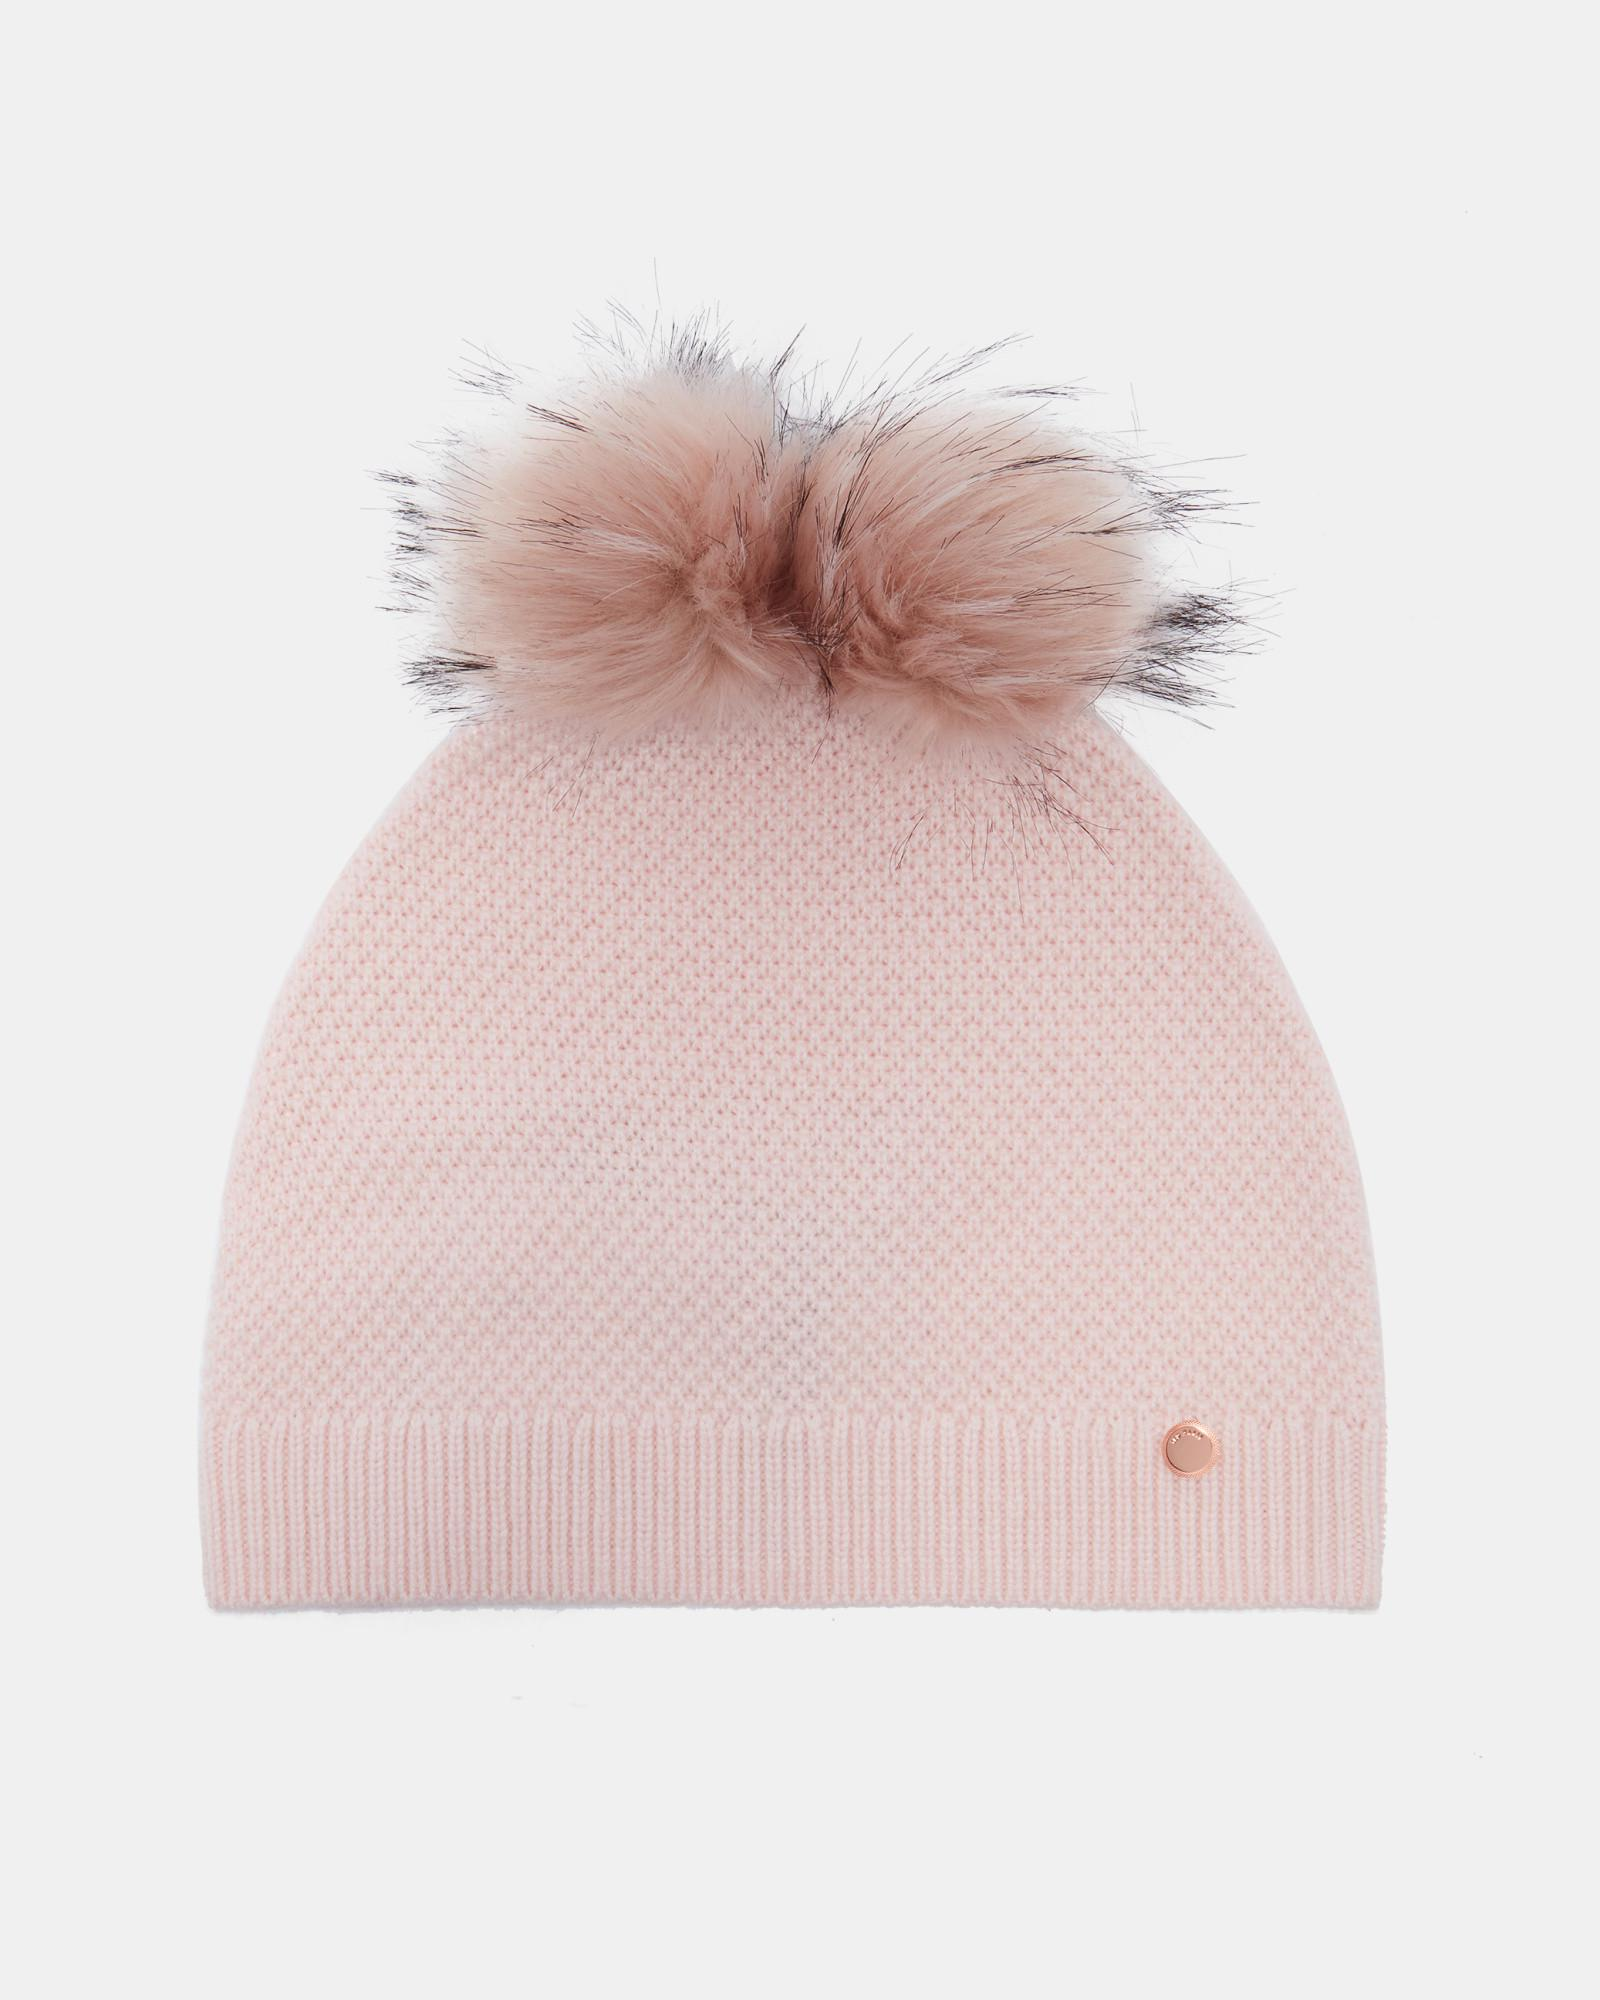 79dd91a7c9d Ted Baker Double Pom-pom Hat in Pink - Lyst